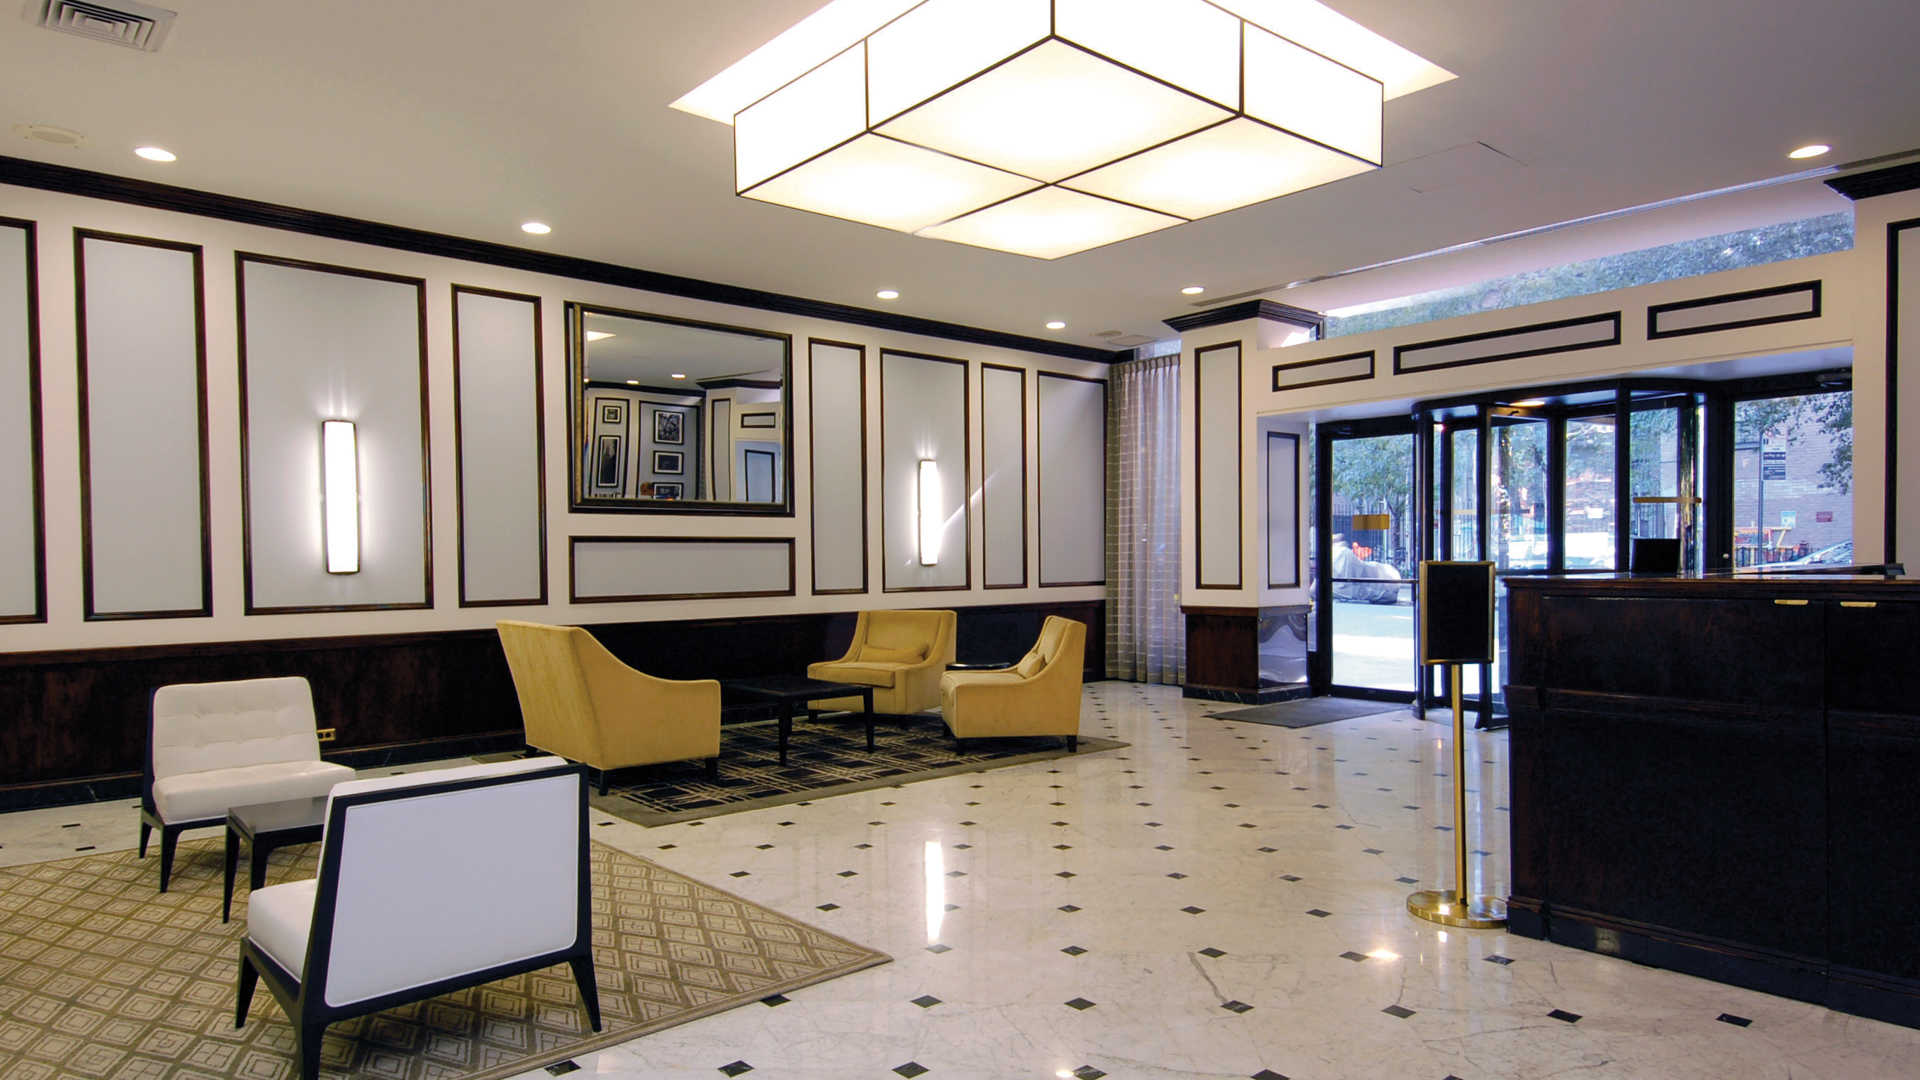 Parc east apartments lobby